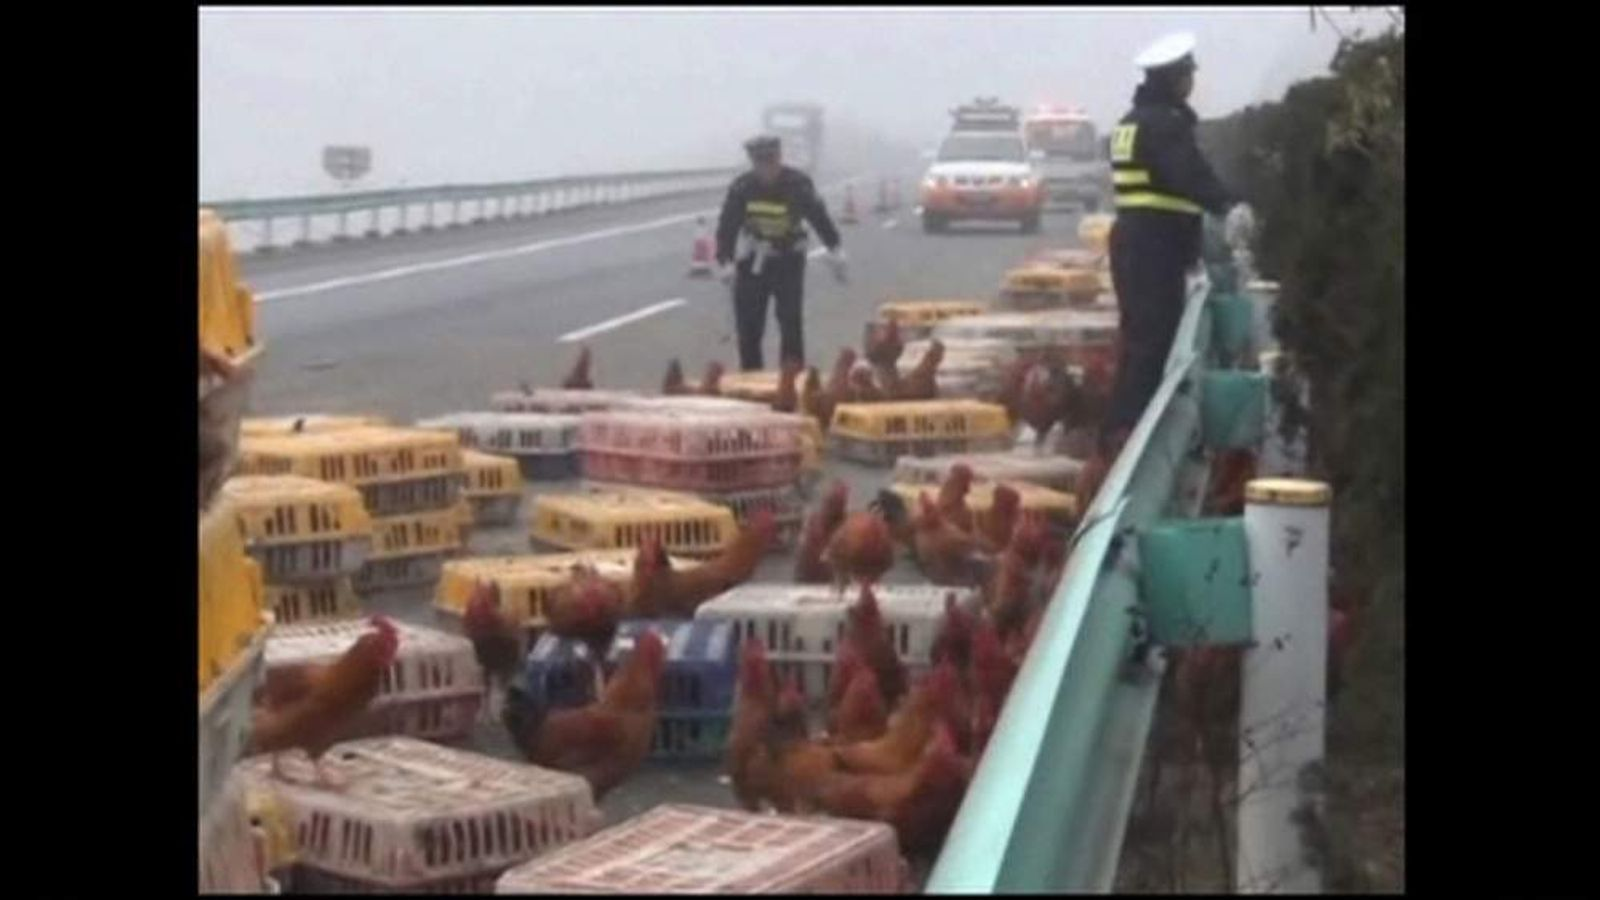 Three thousand chickens on the loose after lorry crash